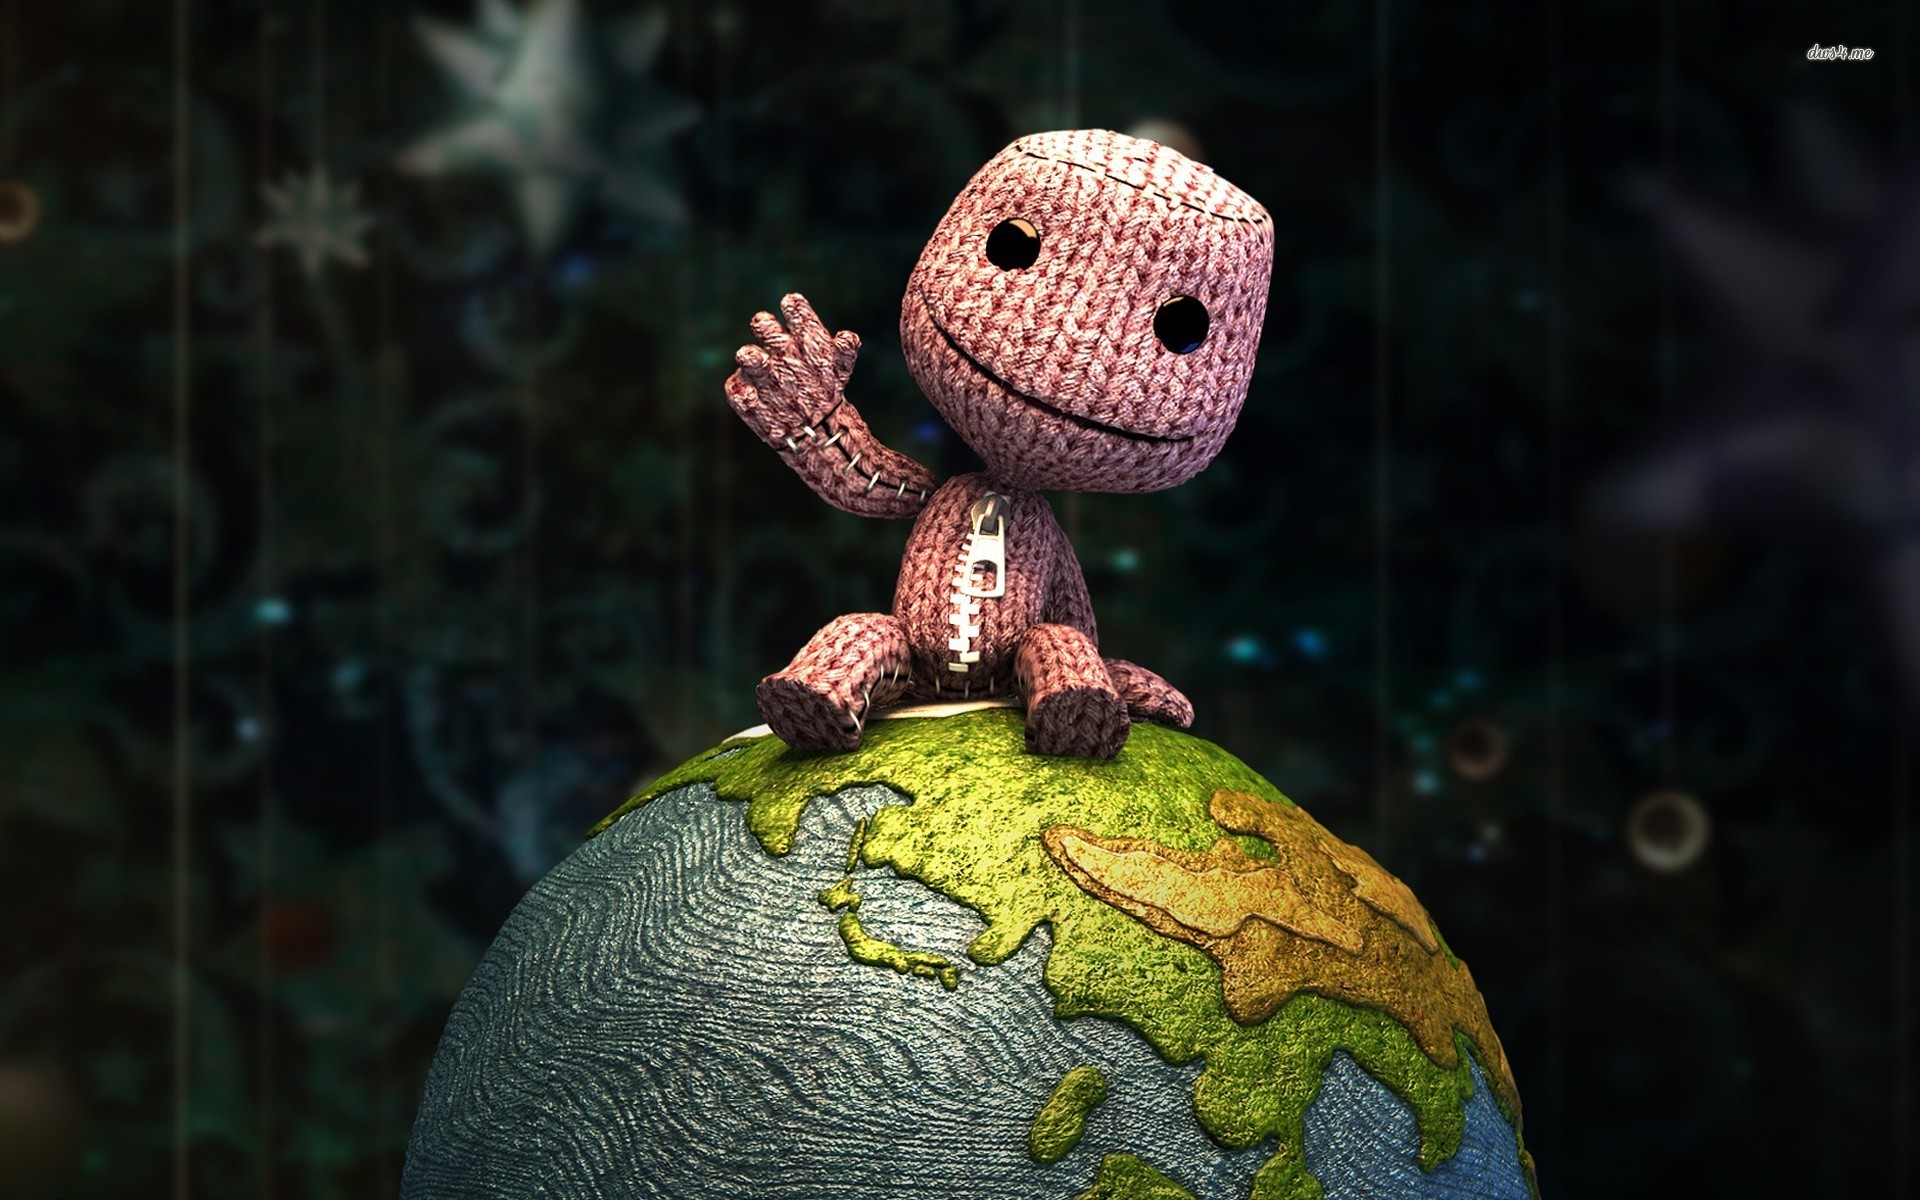 japan is shutting down littlebigplanet servers